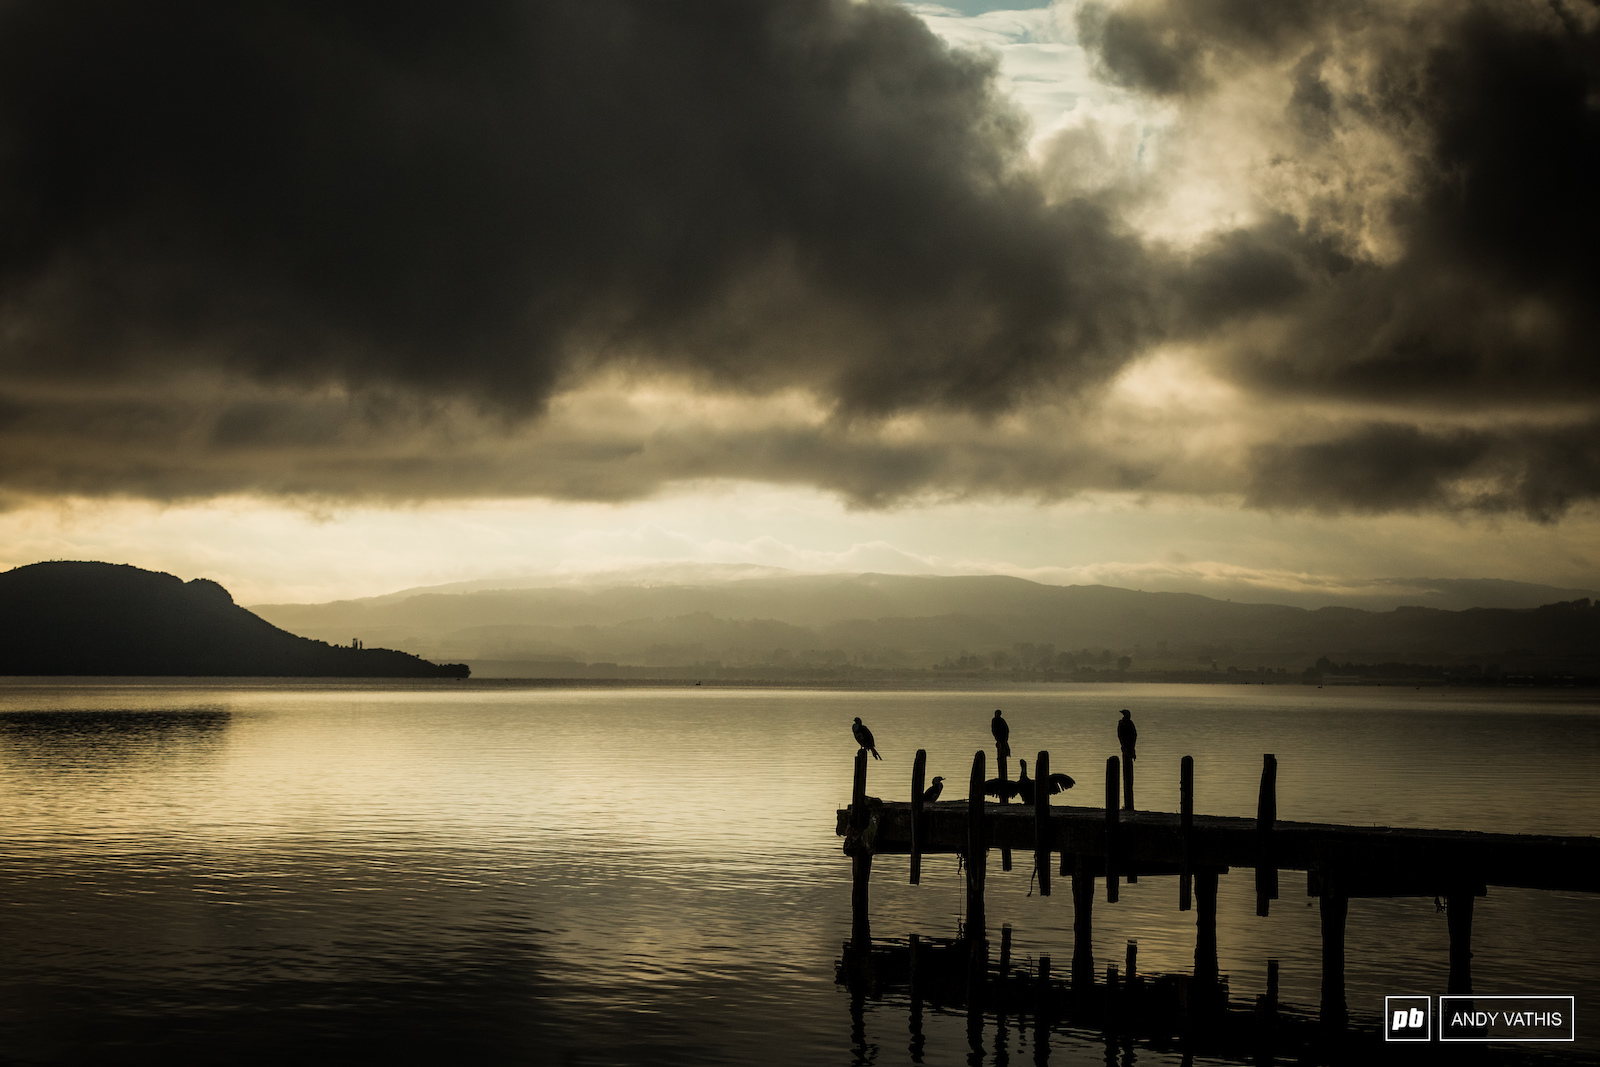 Still mornings on Lake Rotorua as the sun begins to peak out through the clouds.